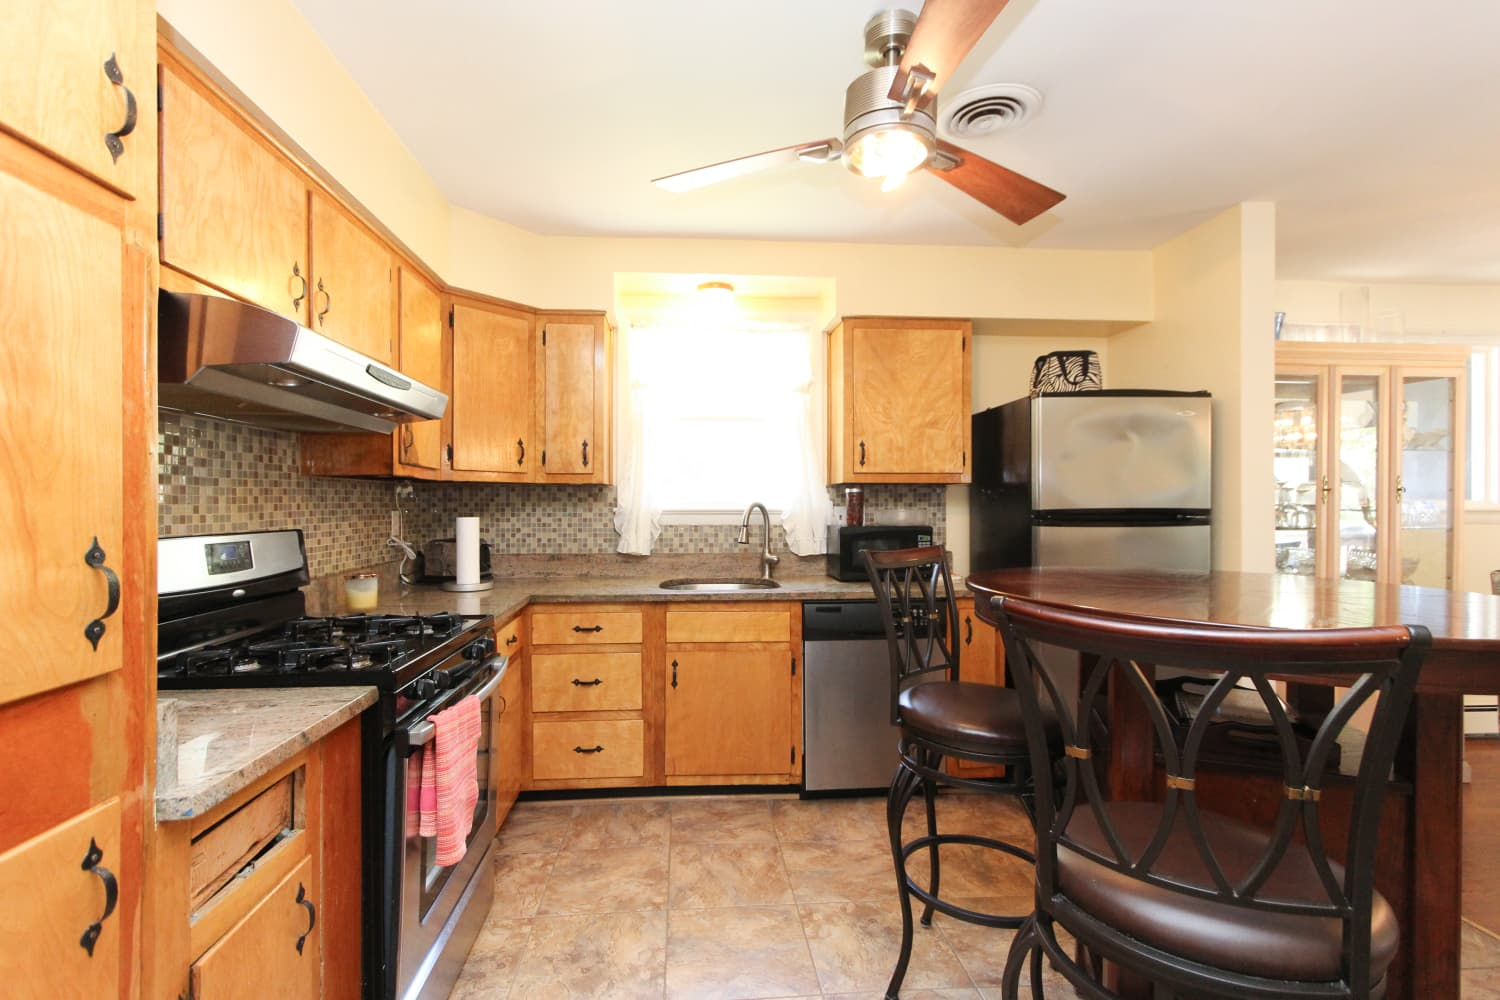 Before & After: Taraji P. Henson Surprises Stepmom with a Brand-New Kitchen